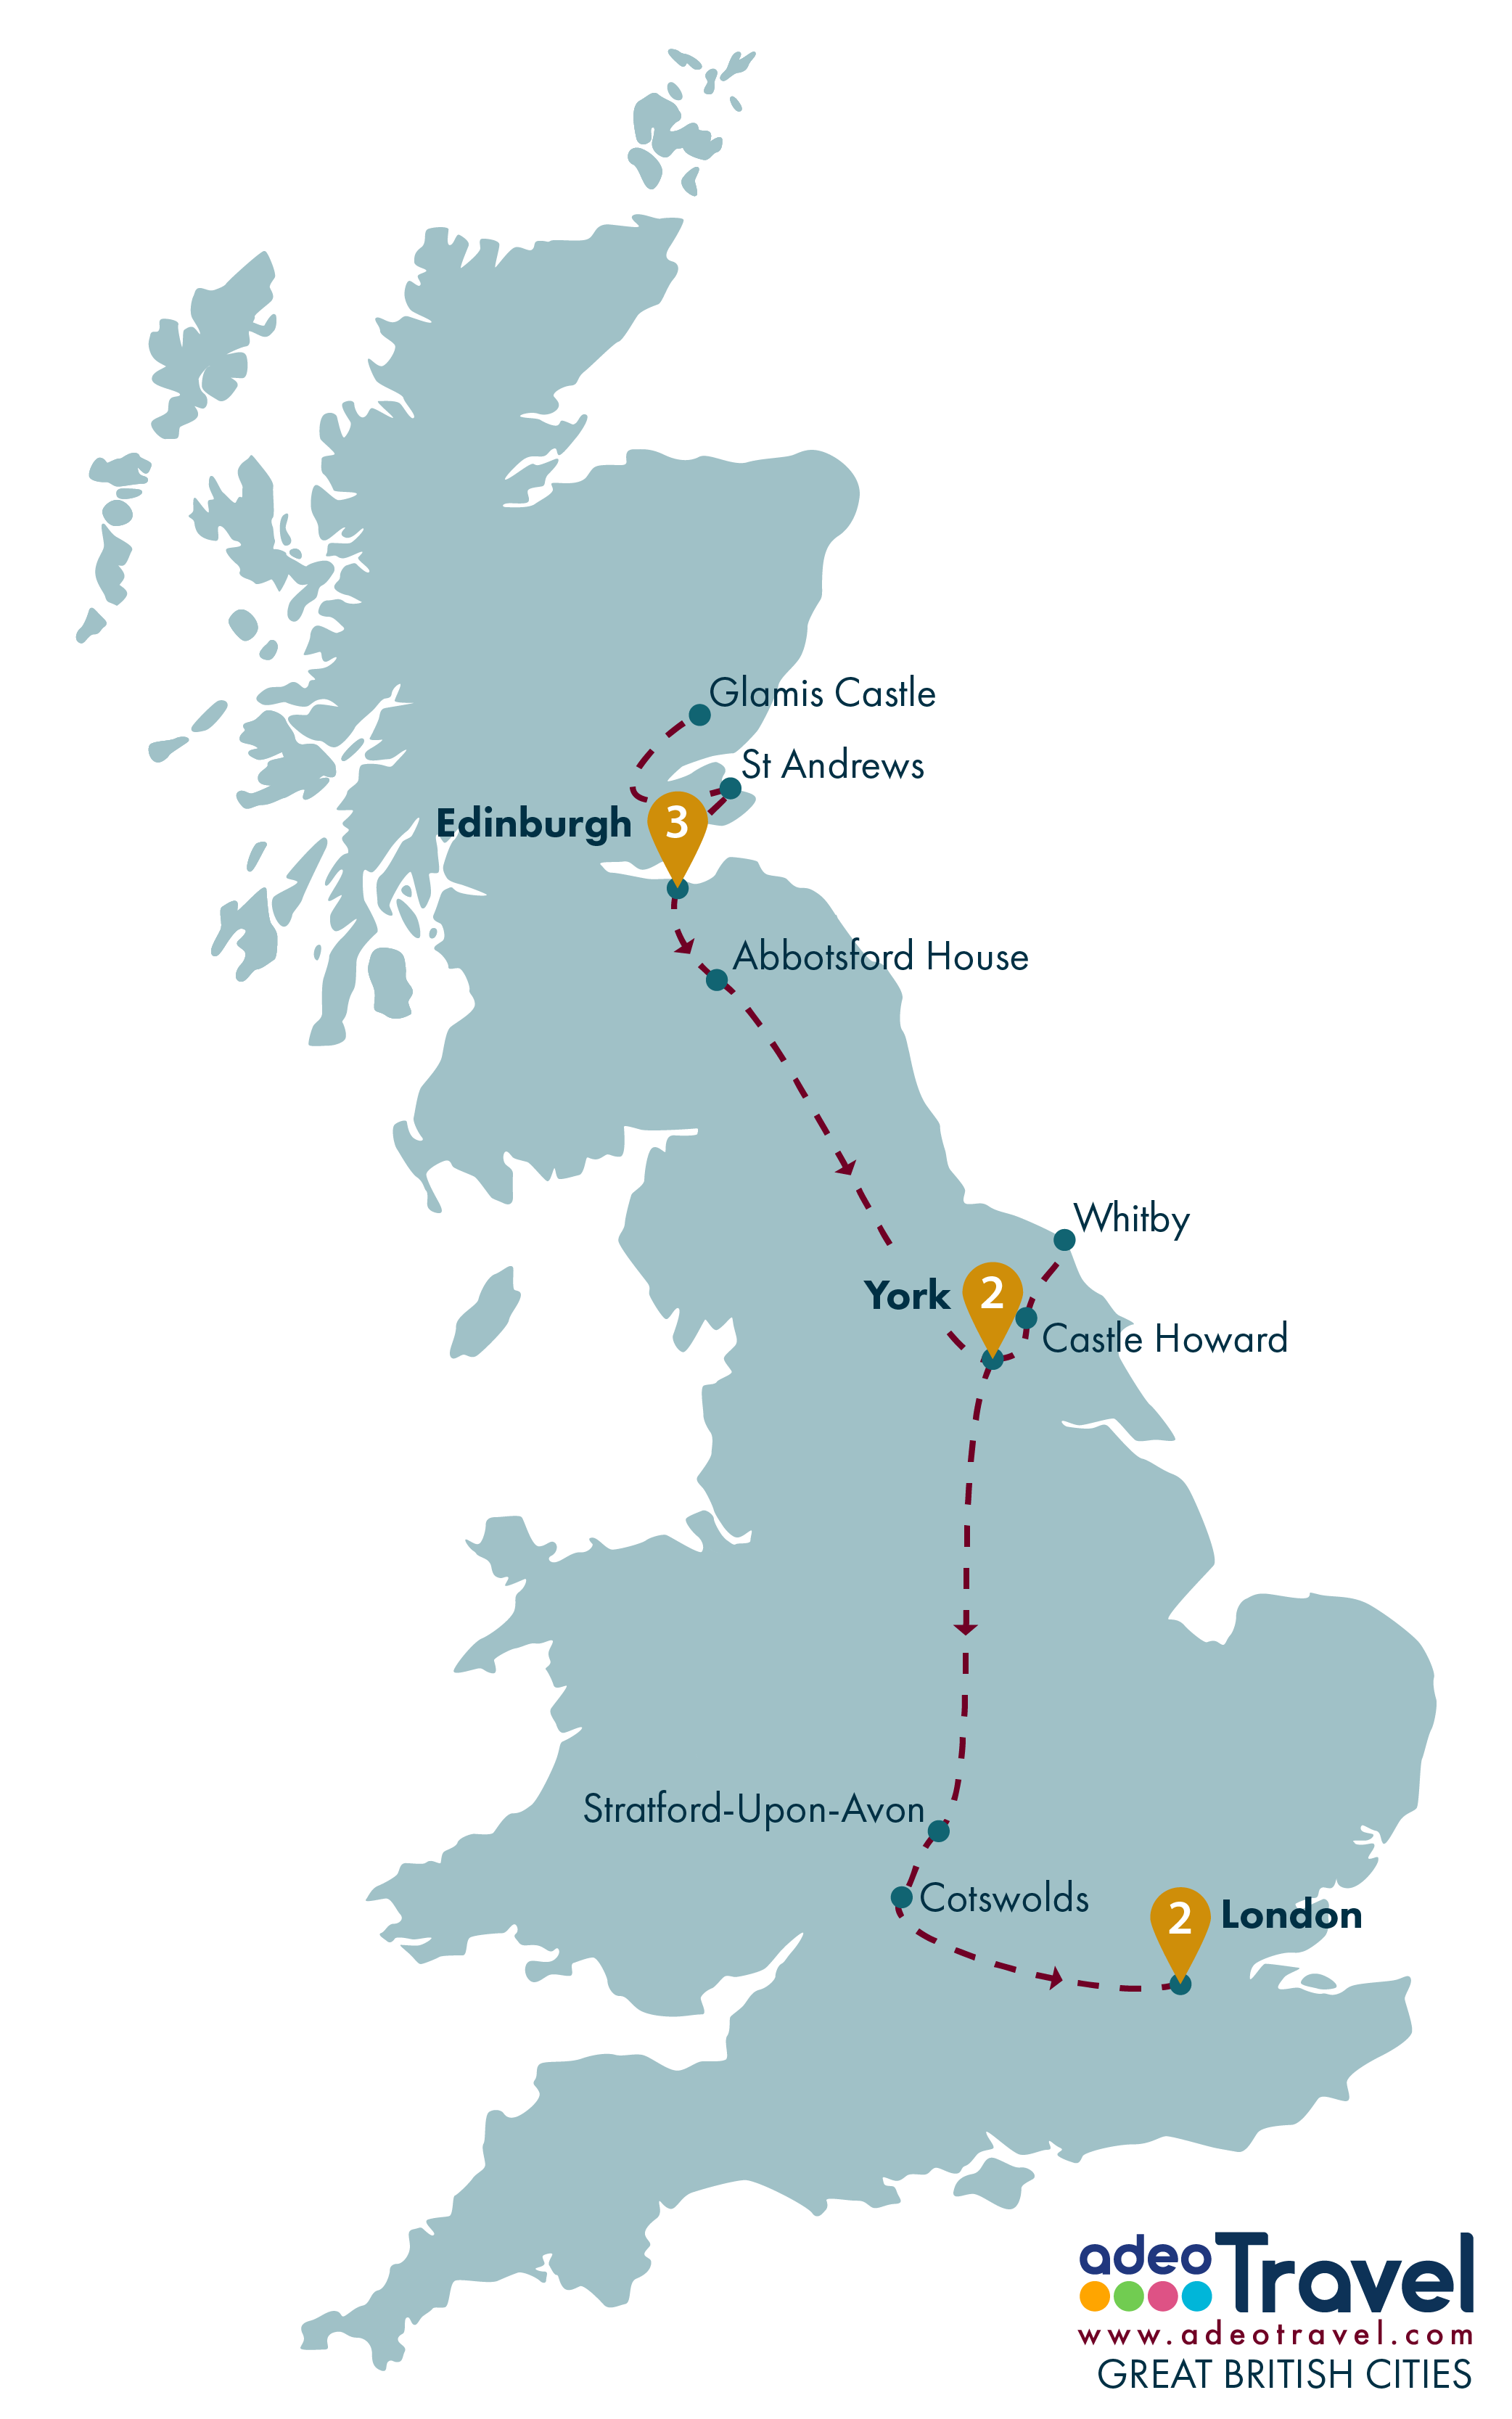 Map Of England Showing Cities.Great British Cities Adeo Travel Escorted Tour Of Scotland And